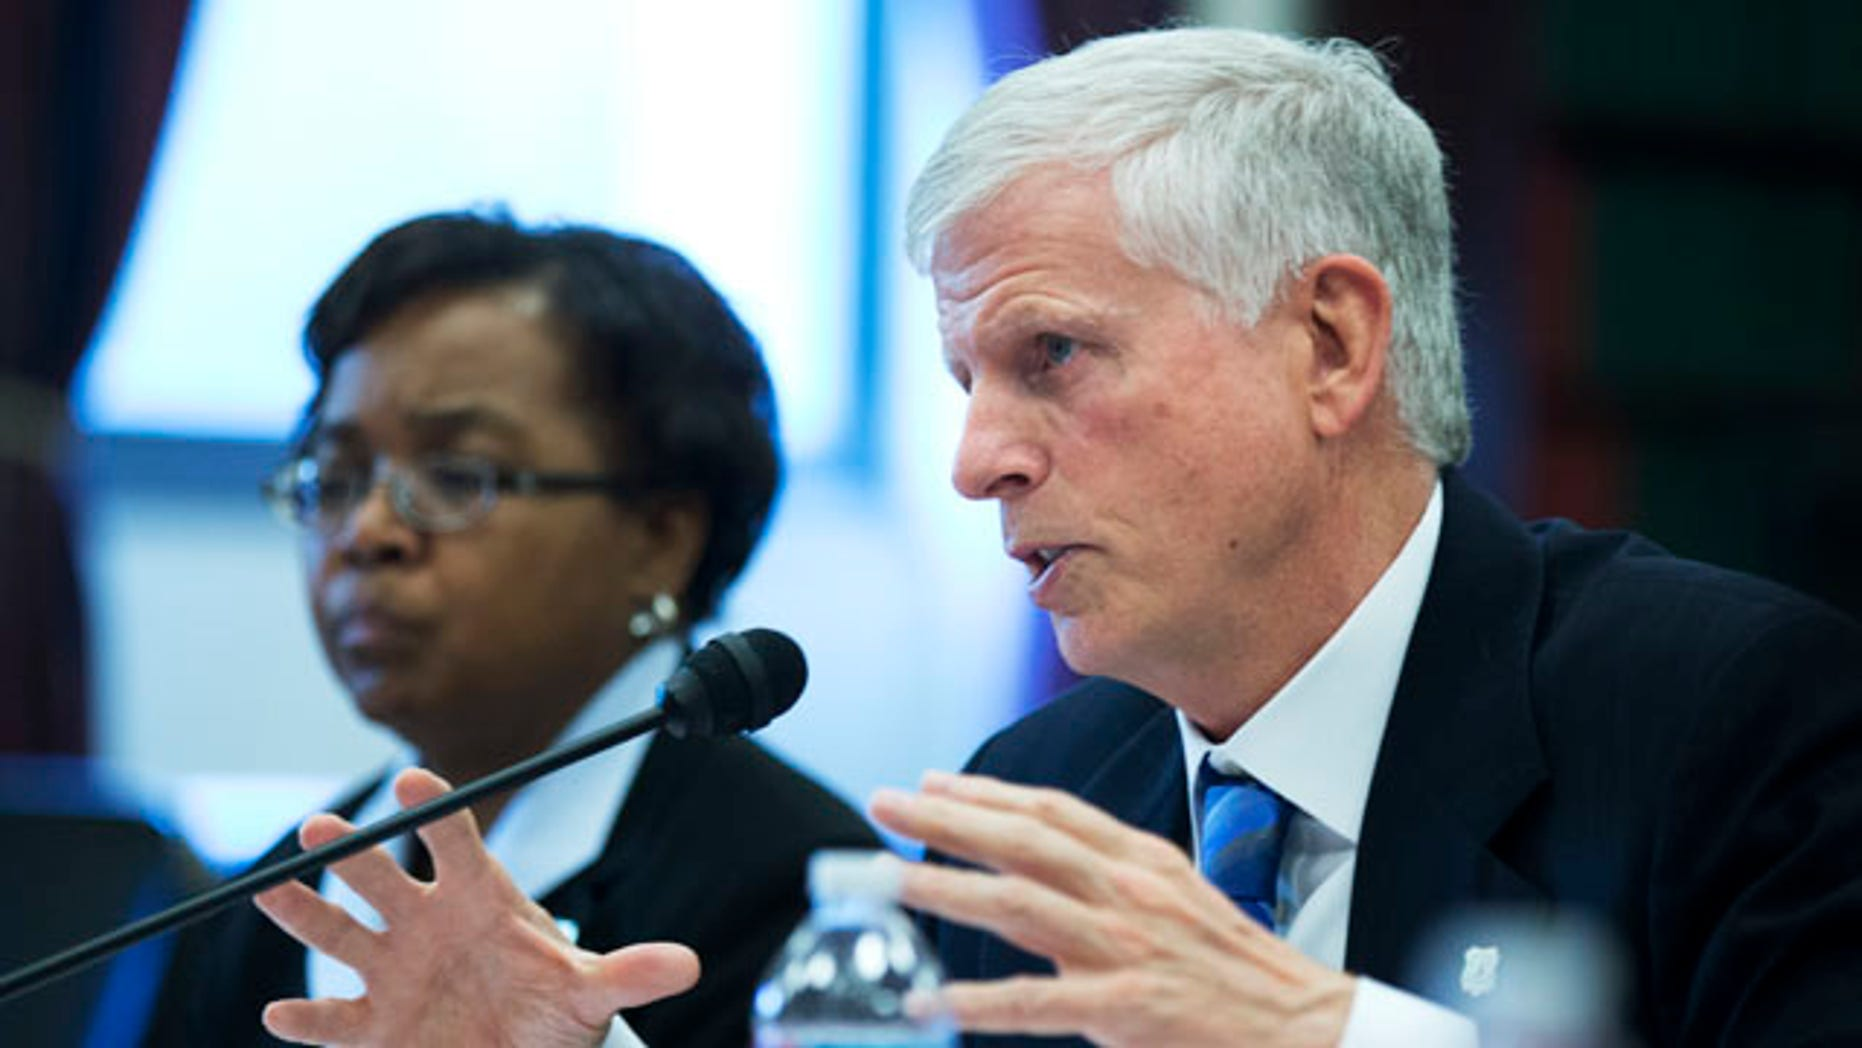 April 26, 2013: Forest Service Chief Tom Tidwell testifies on Capitol Hill in Washington, before the House Appropriations Committee, subcommittee on Interior, Environment, and Related Agencies budget hearing on forest service.